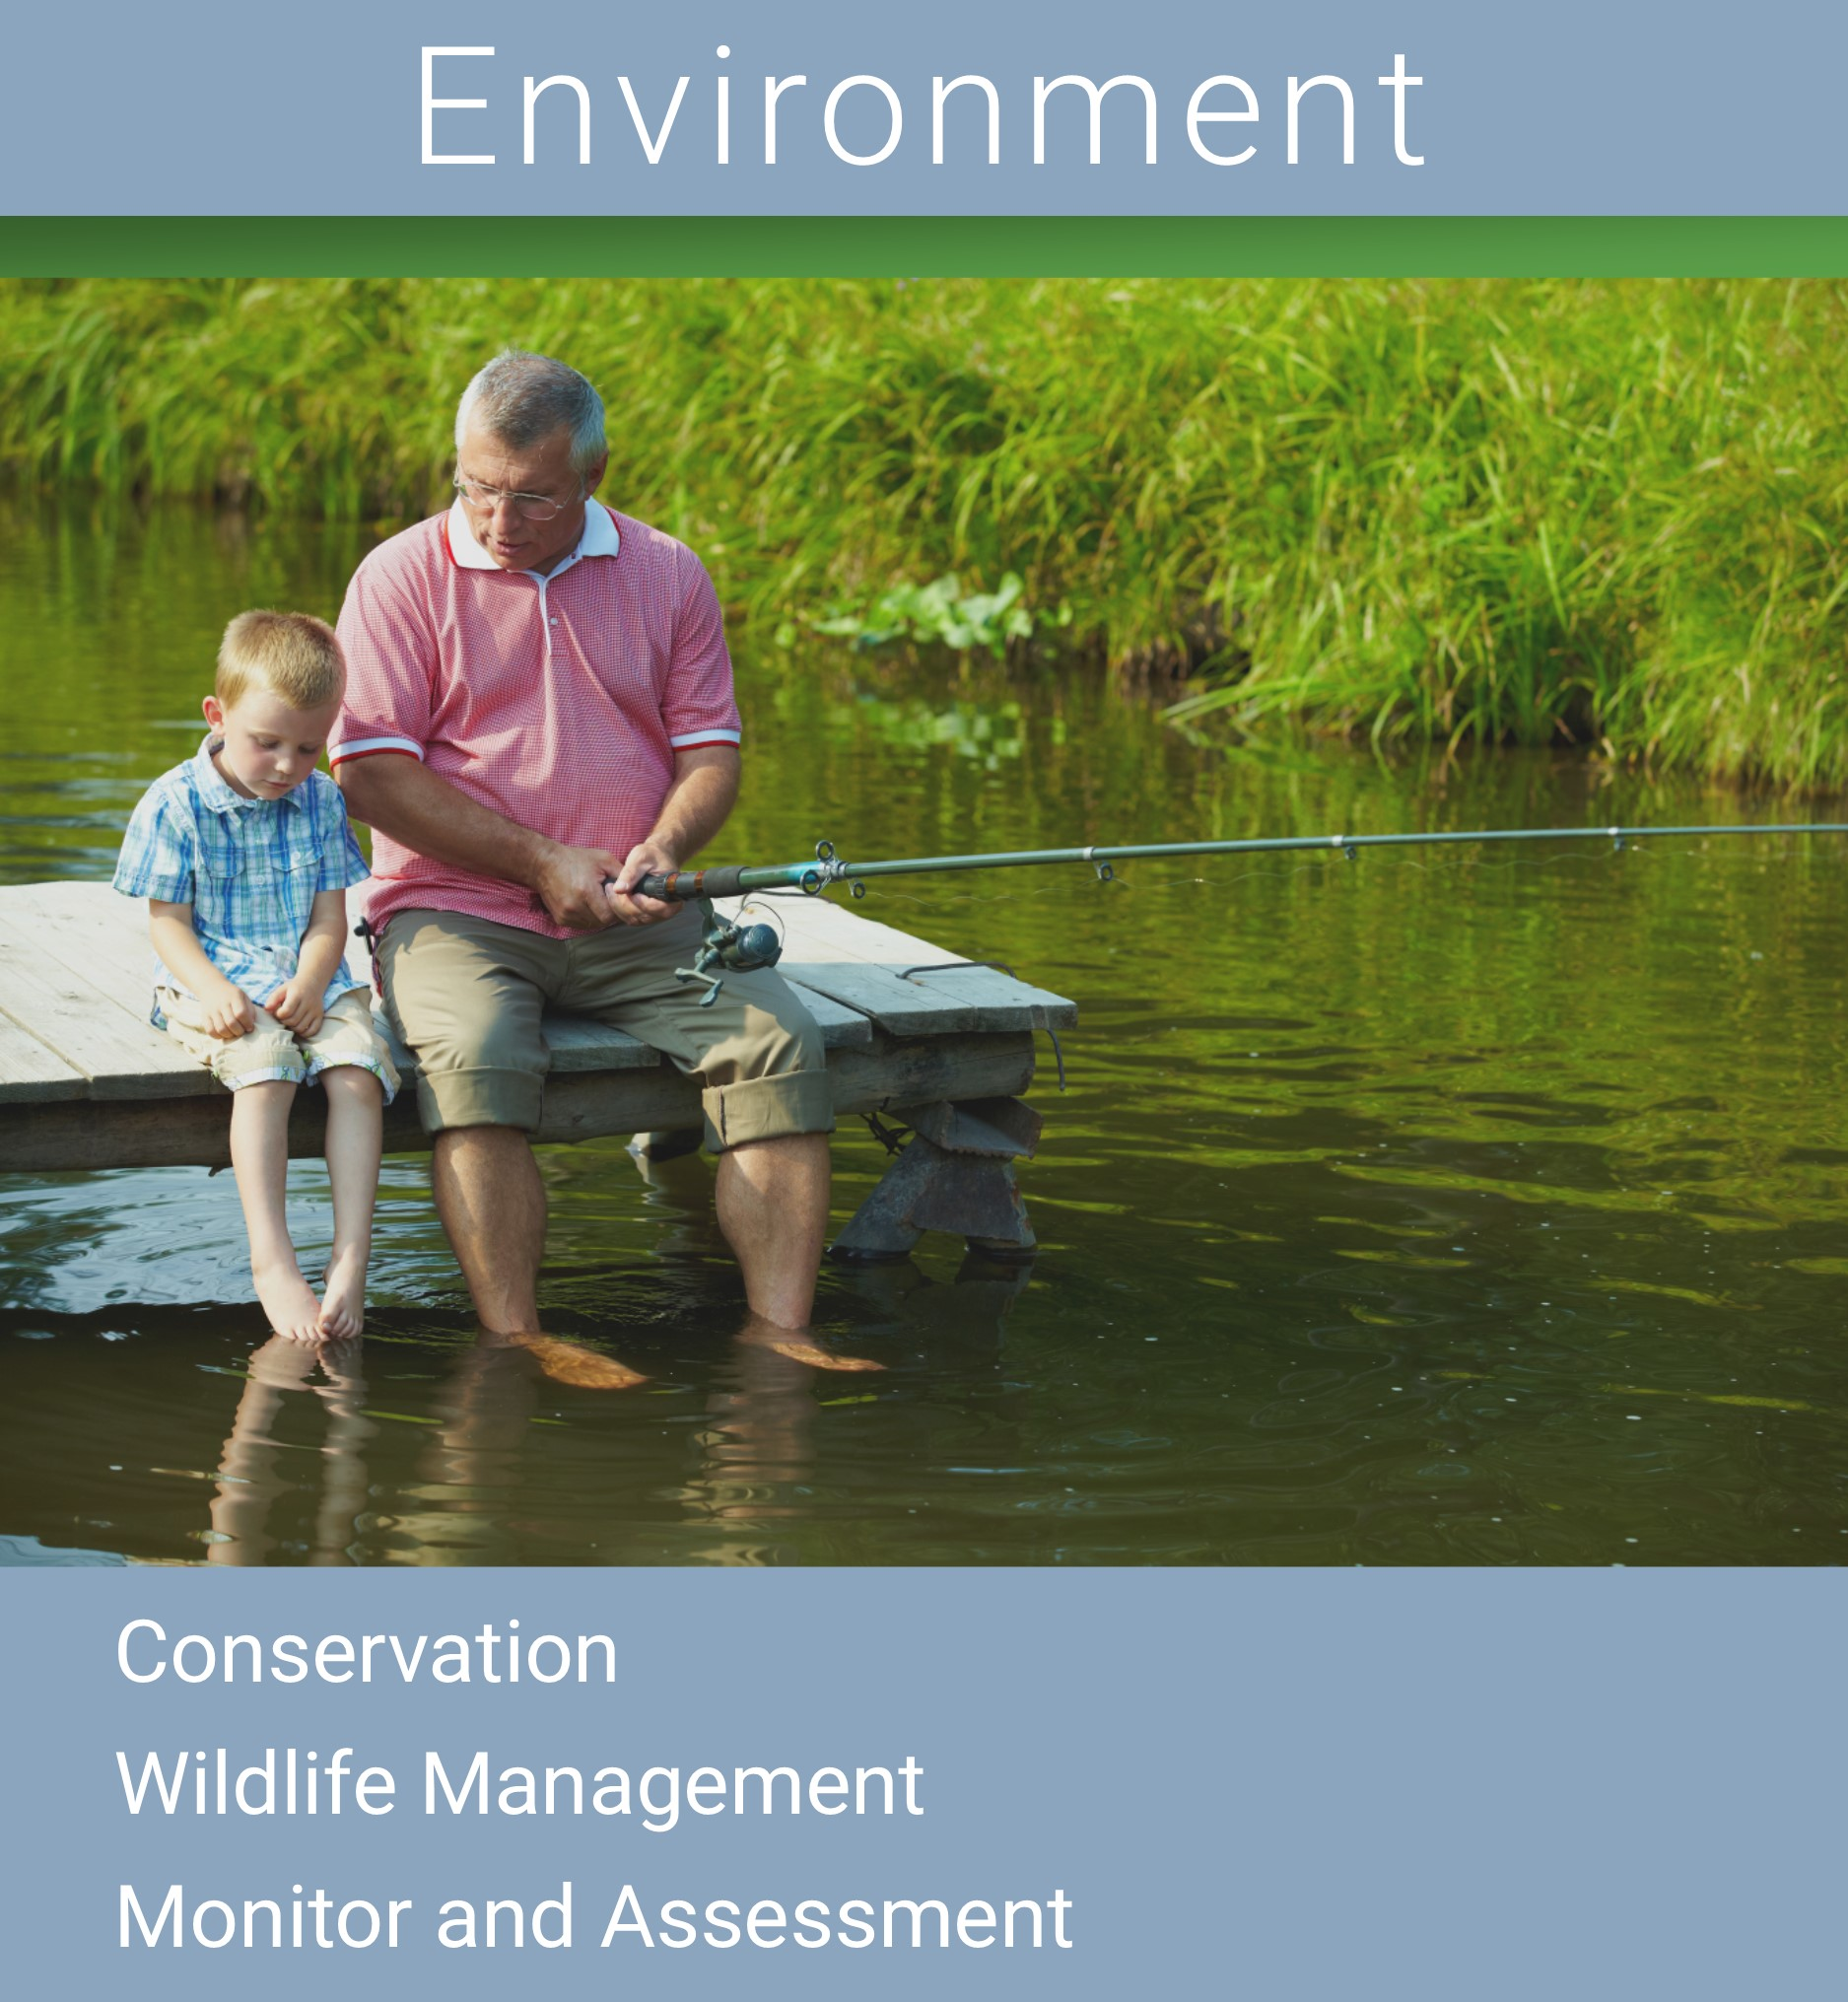 Environment Drone, Conservation Drone, Wildlife Management Drone, Monitor and Assessment Drone